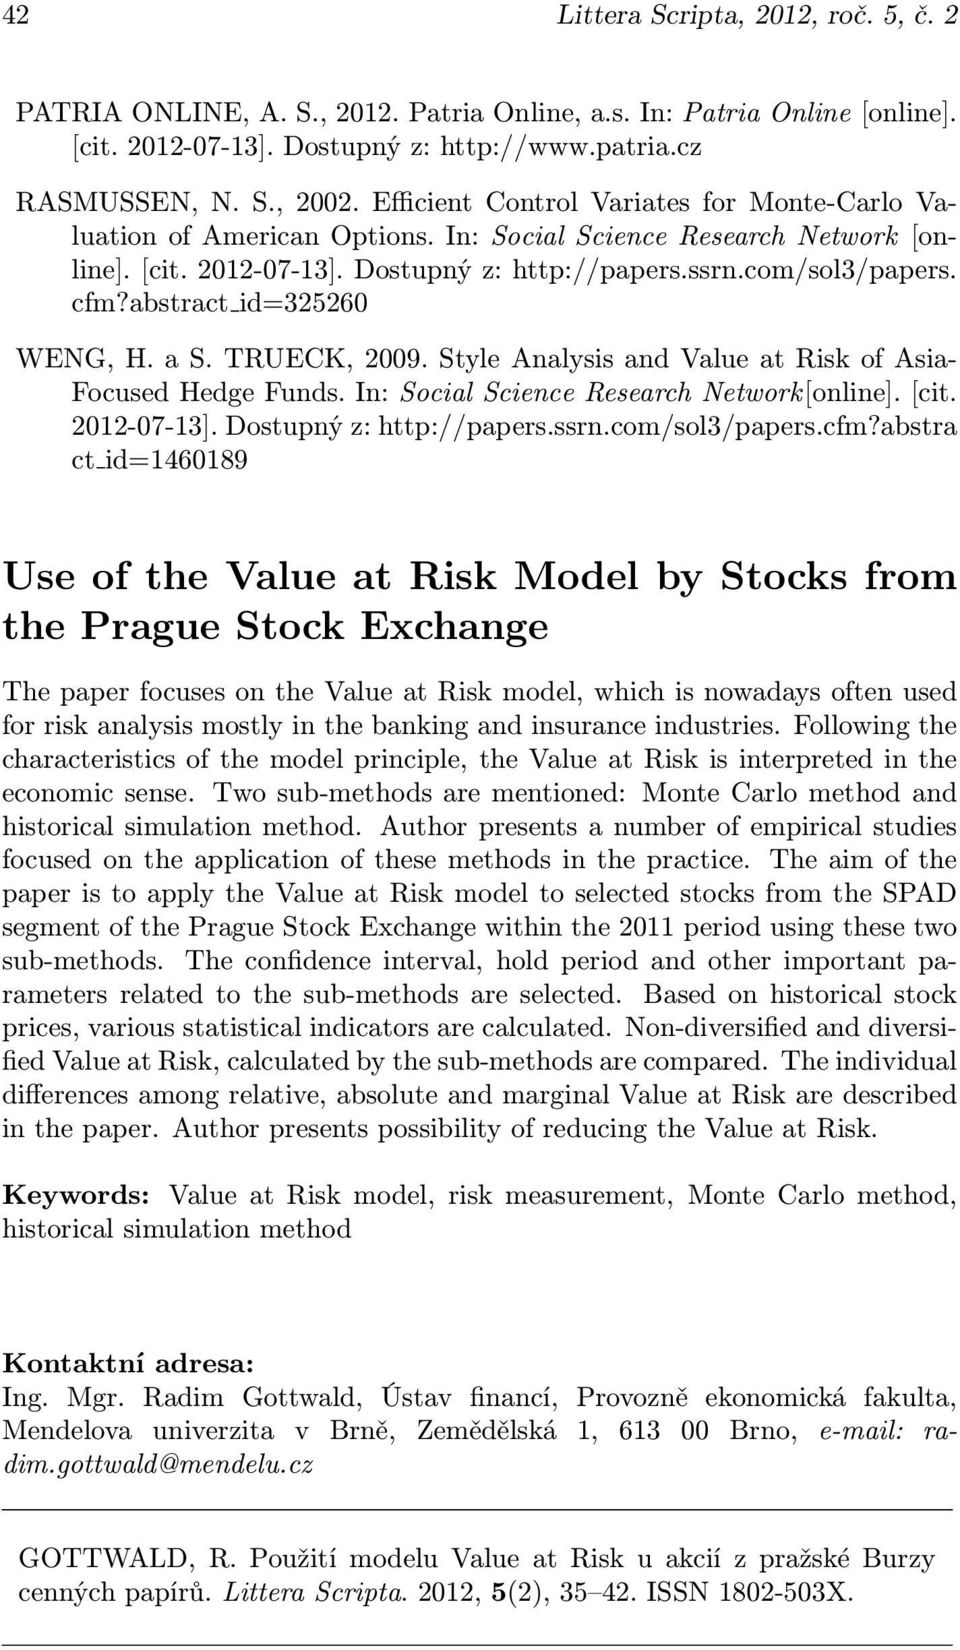 abstract id=325260 WENG, H. a S. TRUECK, 2009. Style Analysis and Value at Risk of Asia- Focused Hedge Funds. In: Social Science Research Network[online]. [cit. 2012-07-13]. Dostupný z: http://papers.